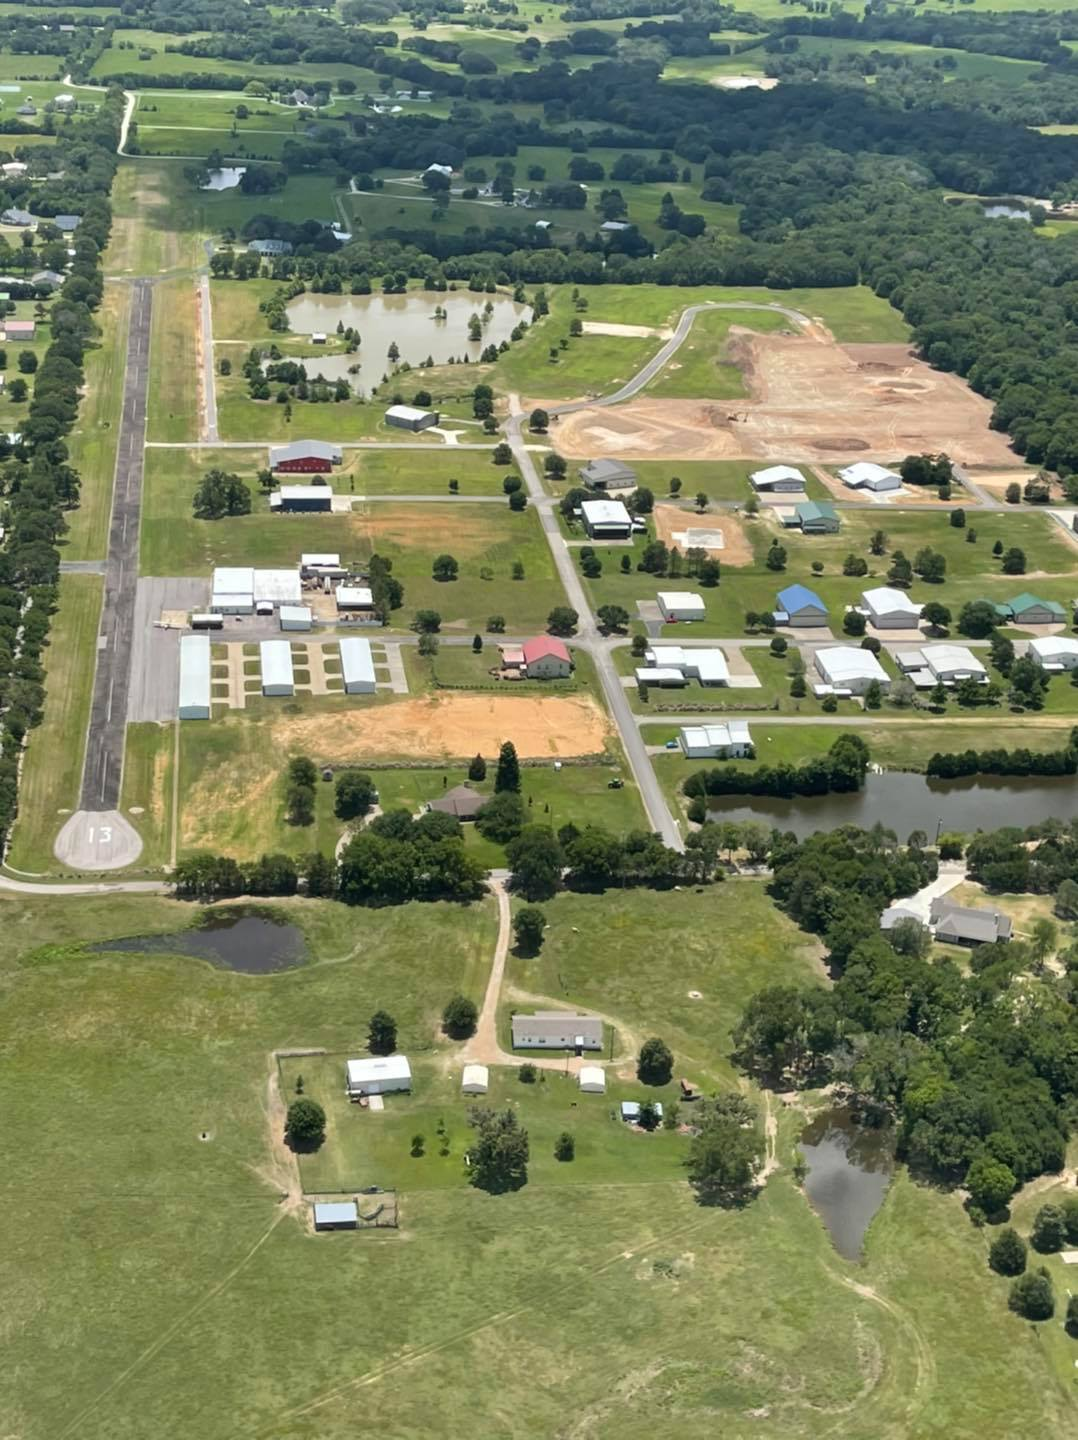 Aerial view of construction on new lots in Section II of the Hangar Homes area at Tailwind Airpark